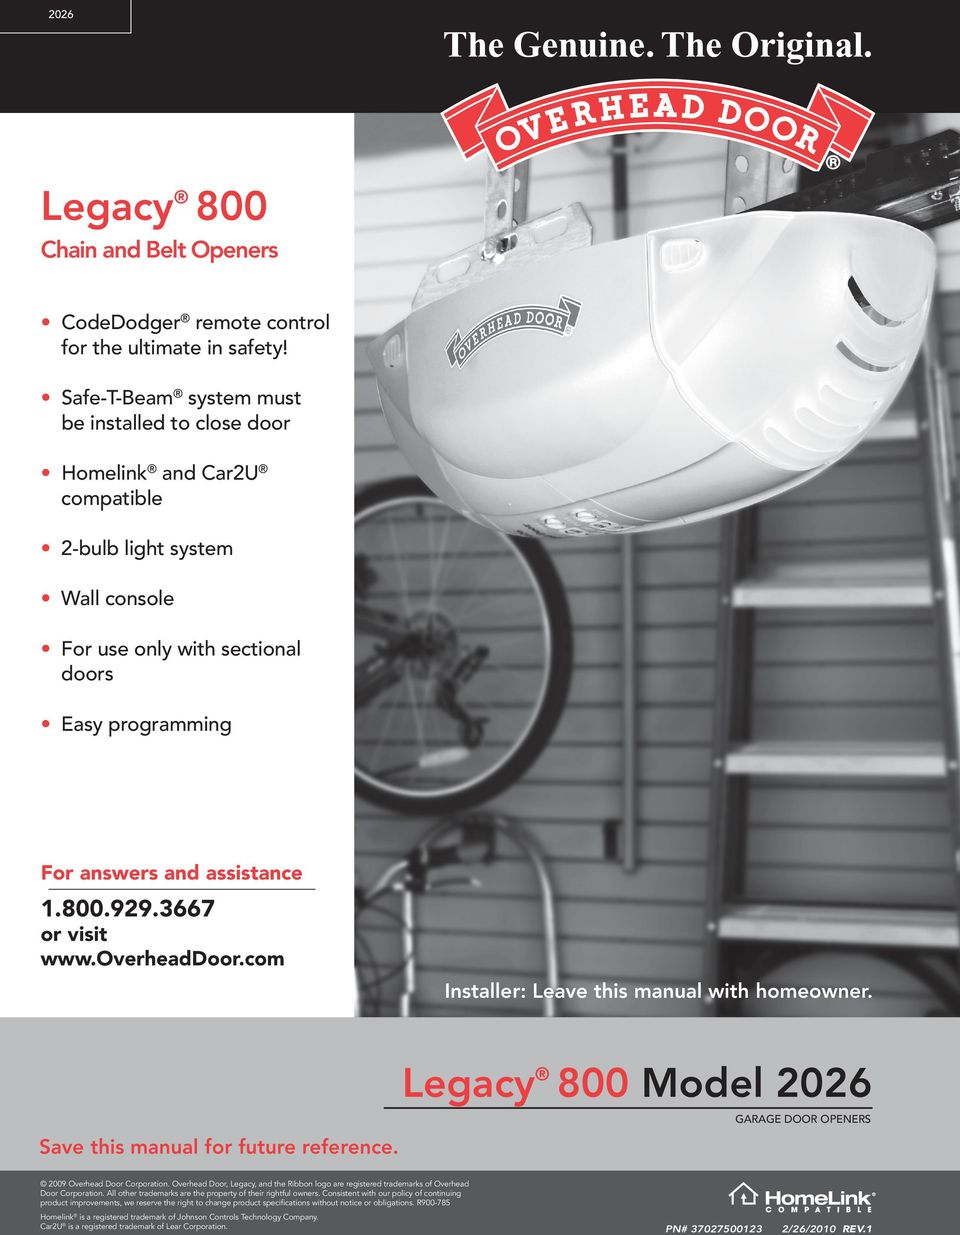 929.3667 or visit www.overheaddoor.com Installer: Leave this manual with homeowner. Legacy 800 Model 2026 Save this manual for future reference. GARAGE DOOR OPENERS 2009 Overhead Door Corporation.